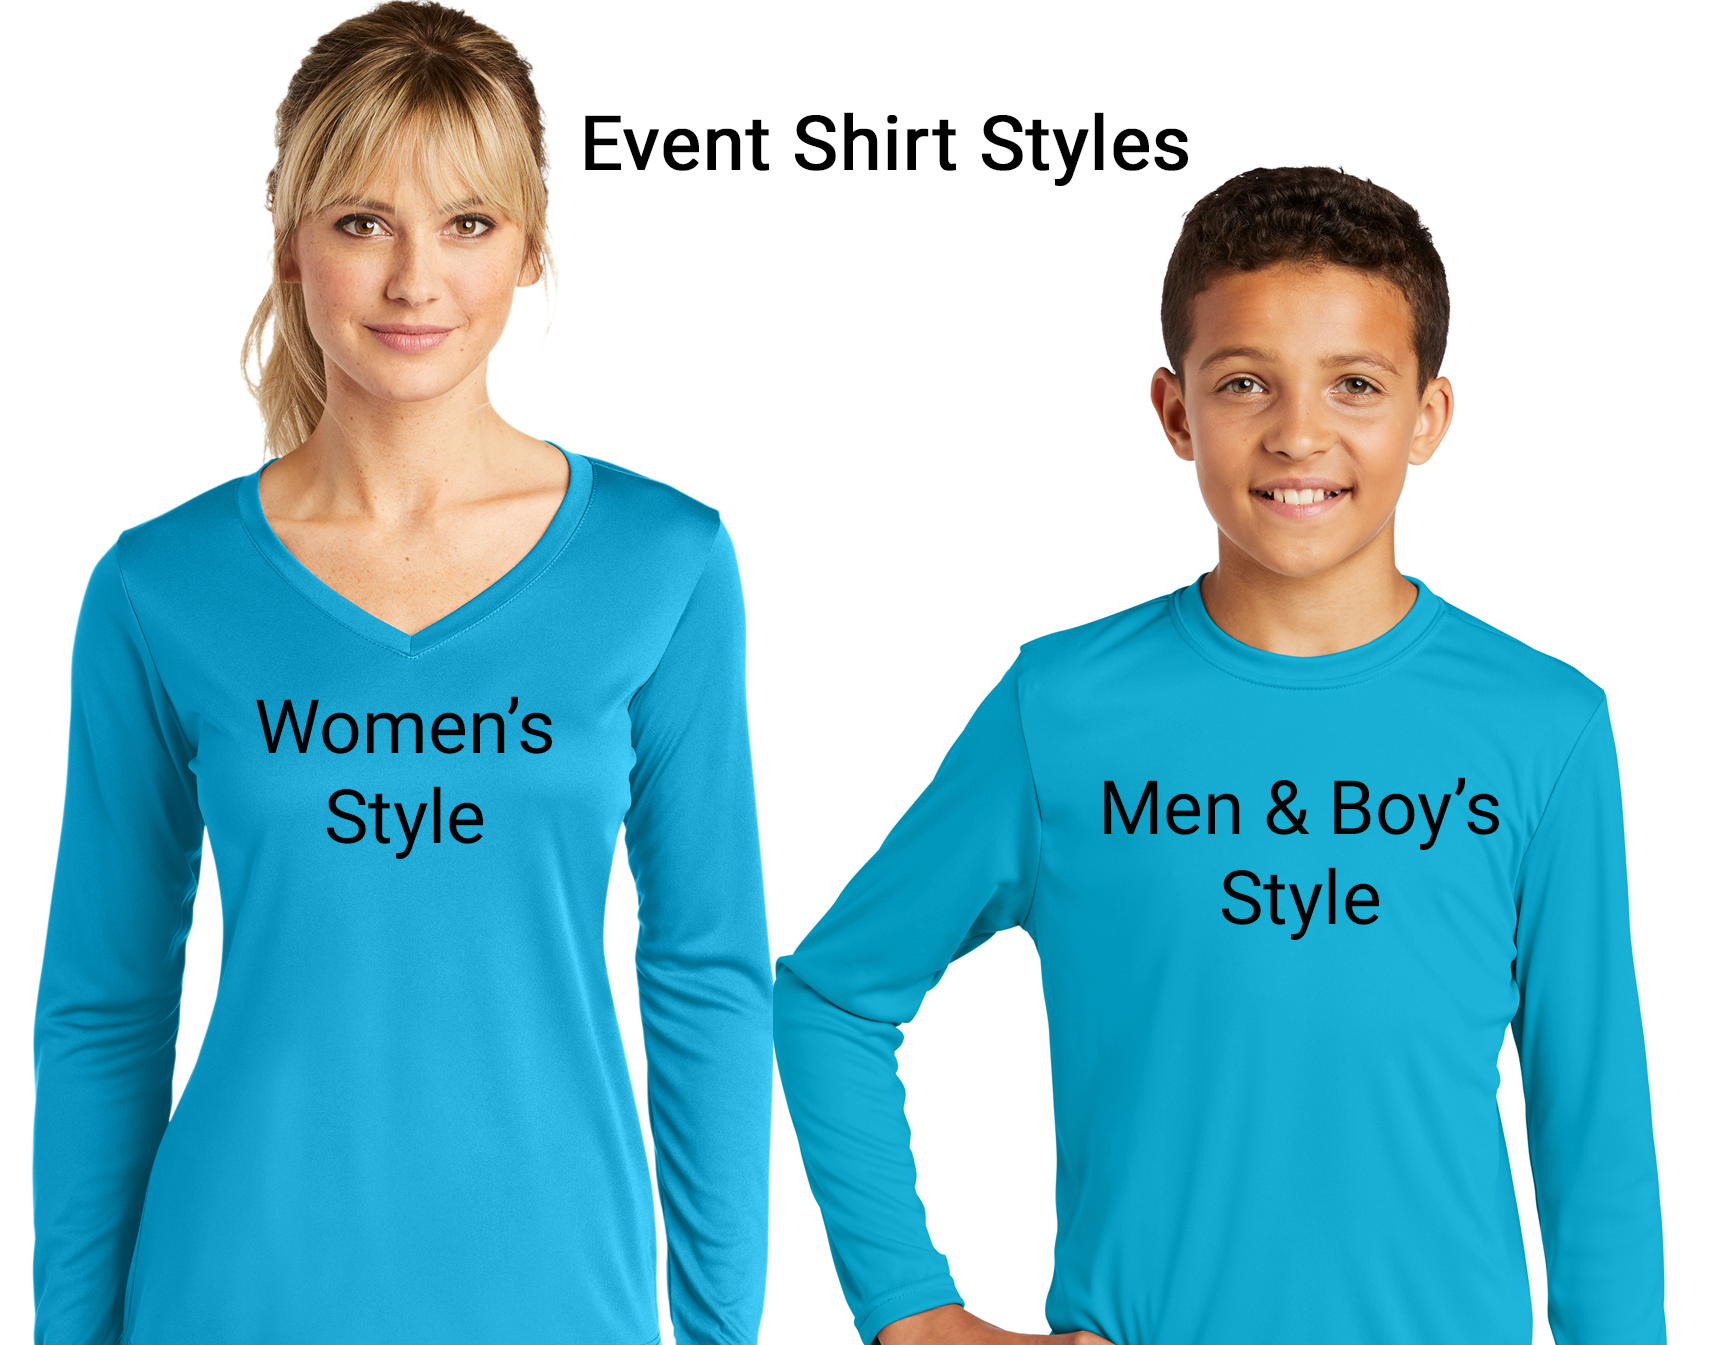 A&S Event Shirt Styles